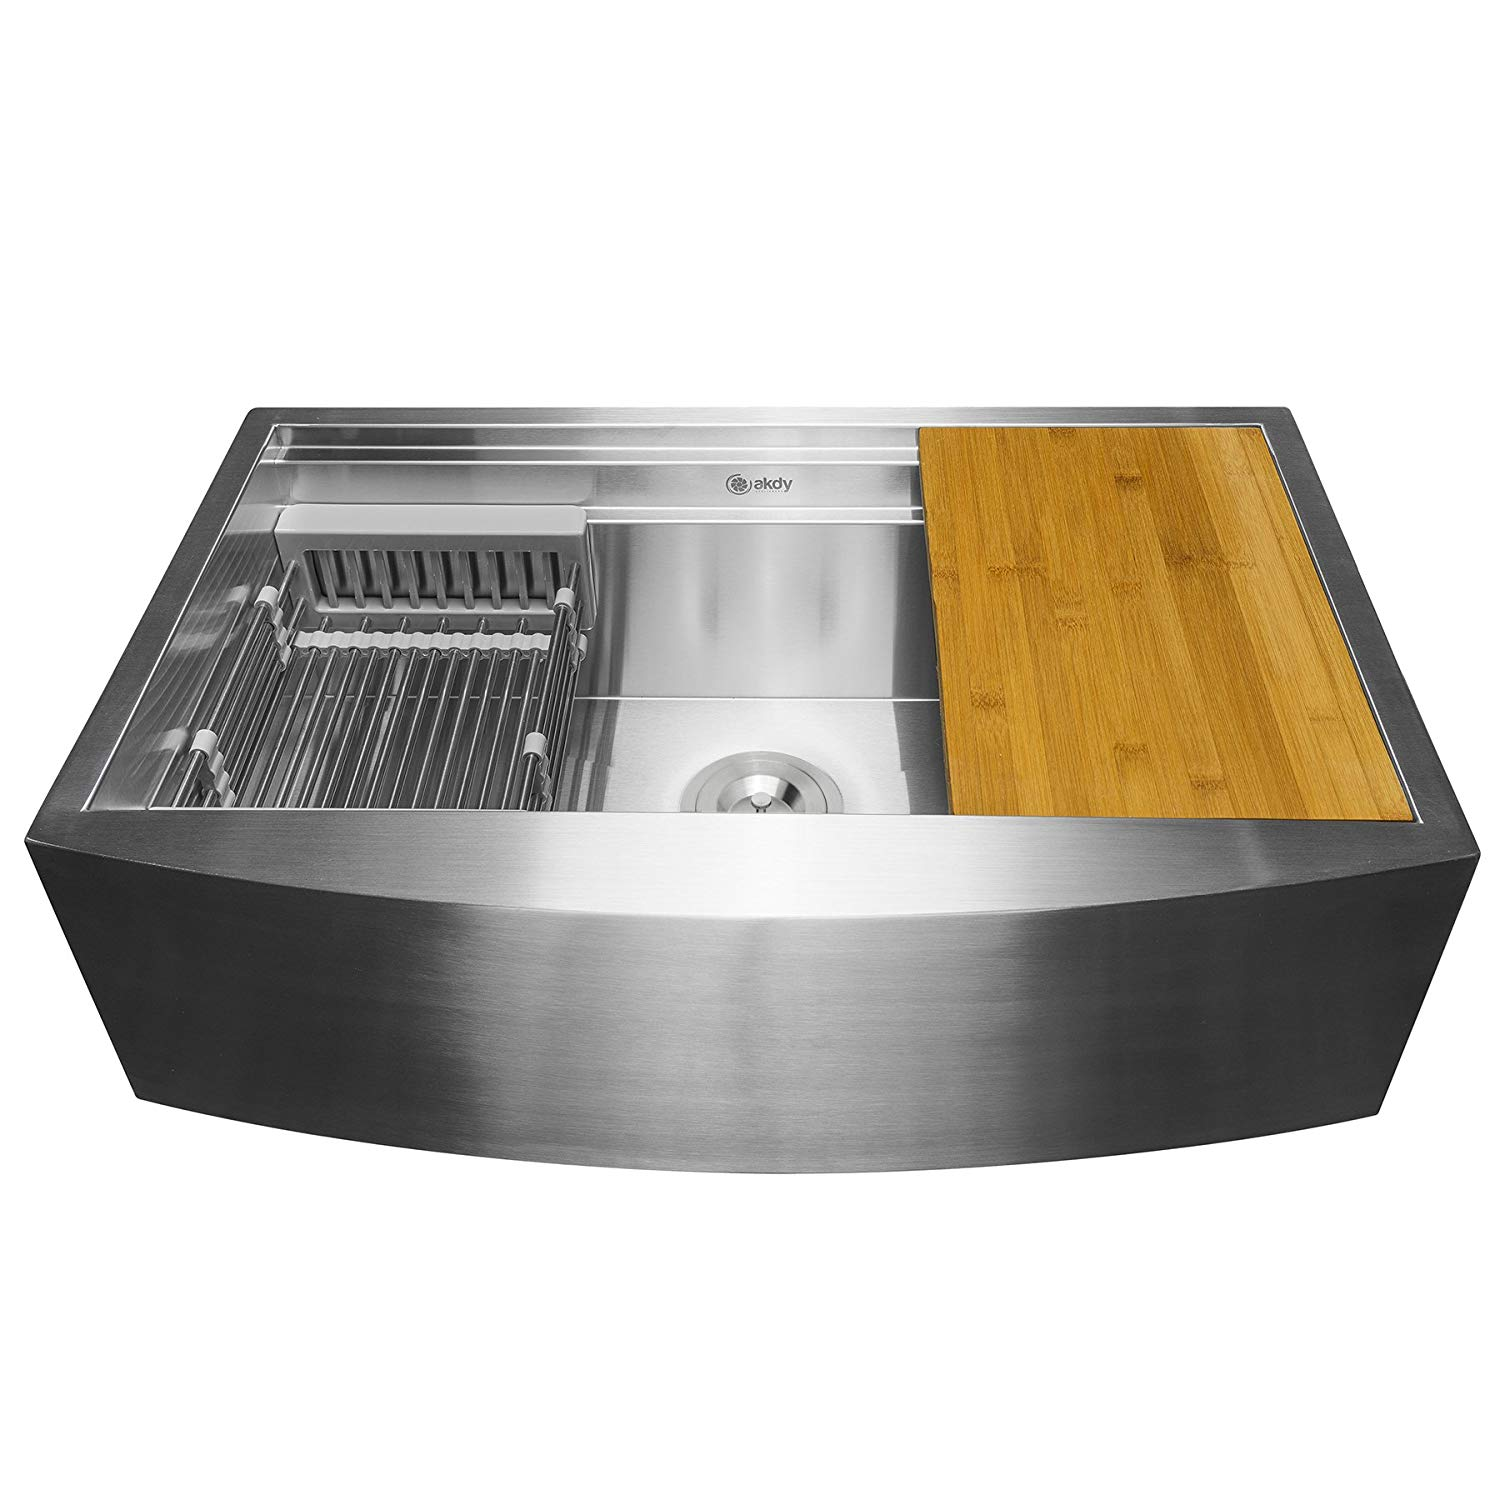 "The Farmhouse Kitchen Decor Sink  AKDY  KS0244 33-Inch (33""x22""x9"") Apron Farmhouse kitchen sink is Handmade Stainless Steel Farmhouse Kitchen Sink  Single Bowl is a Space Saving Kitchen Sink - Kitchen Sink with  Drain Strainer Kit Adjustable Tray and Cutting Board    Here are all the details!"